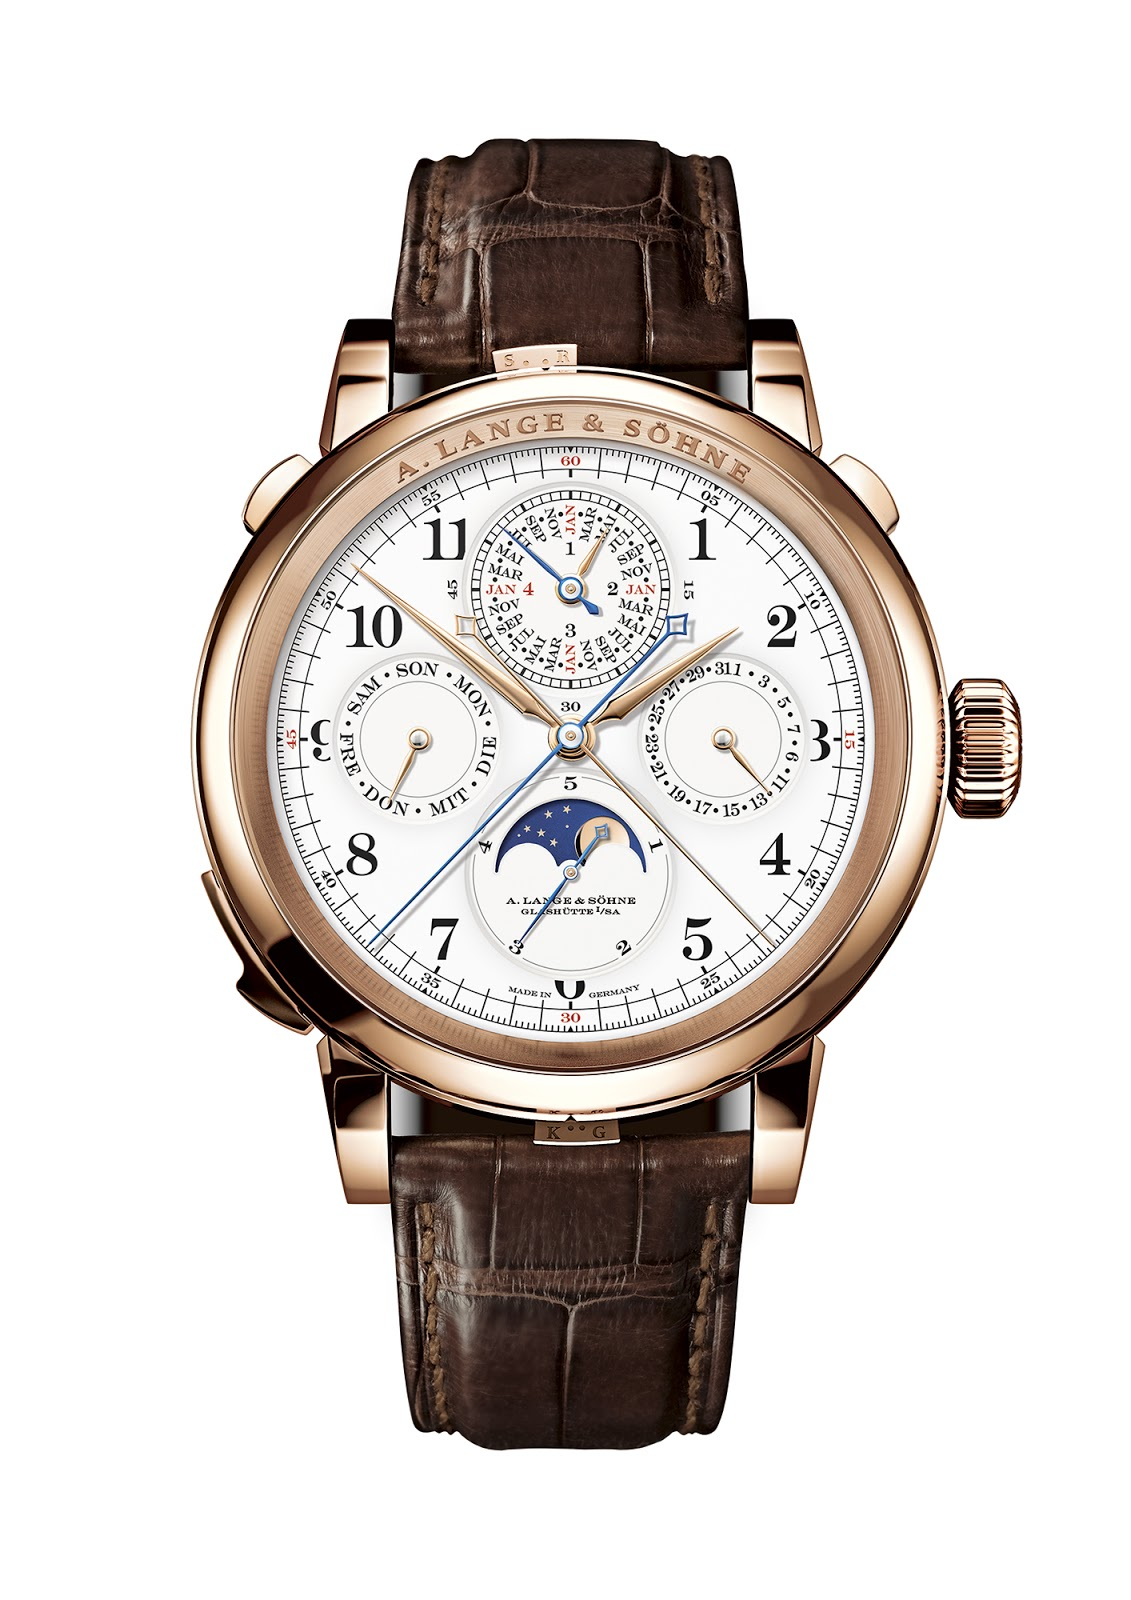 2d7f9144526 A. Lange & Söhne Grand Complication The German watch brand has developed a  timepiece with a host of complications that include chiming mechanism with  grand ...